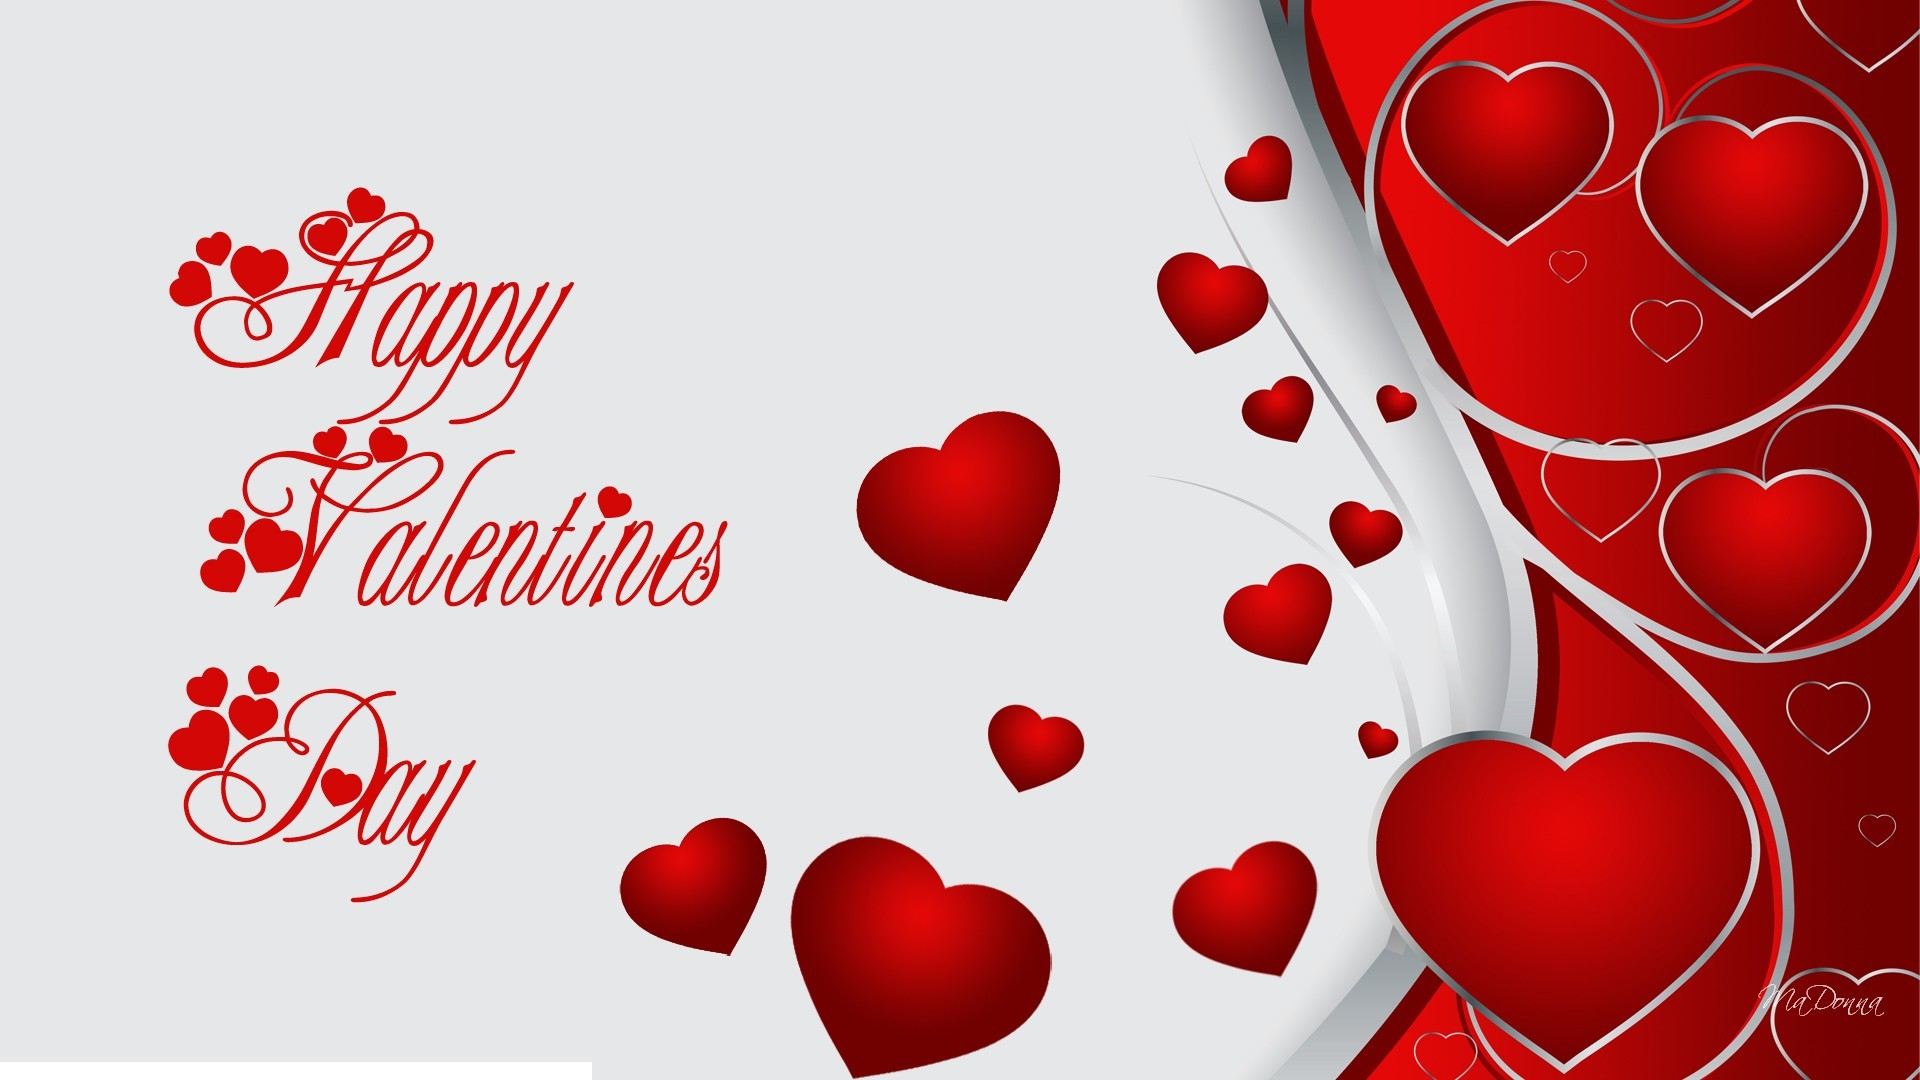 … happy valentines day wallpaper photo al 30 beautiful …